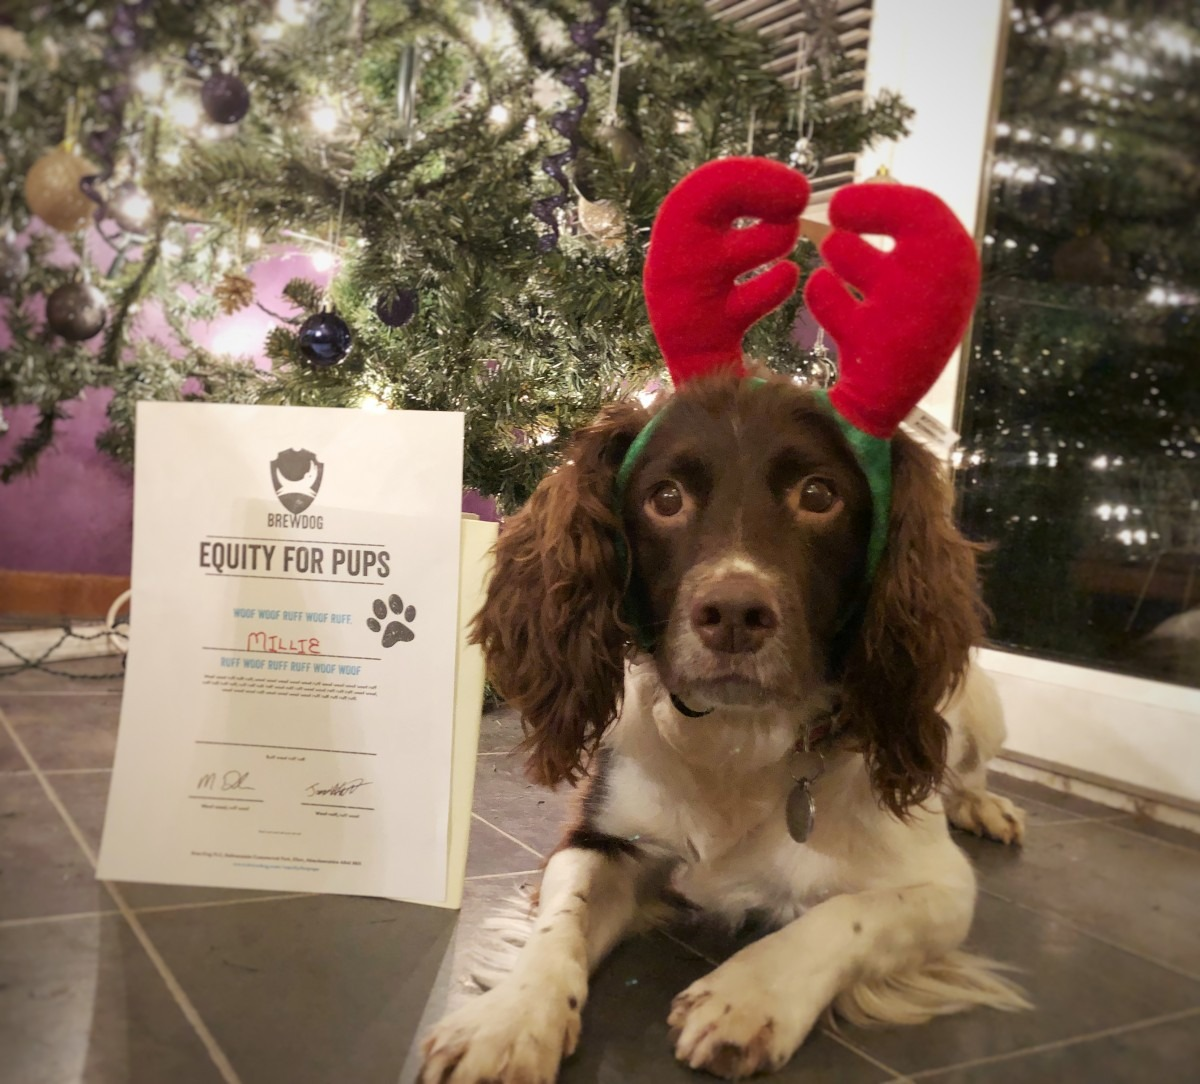 BrewDog Equity for Pups - Christmas Present for Millie